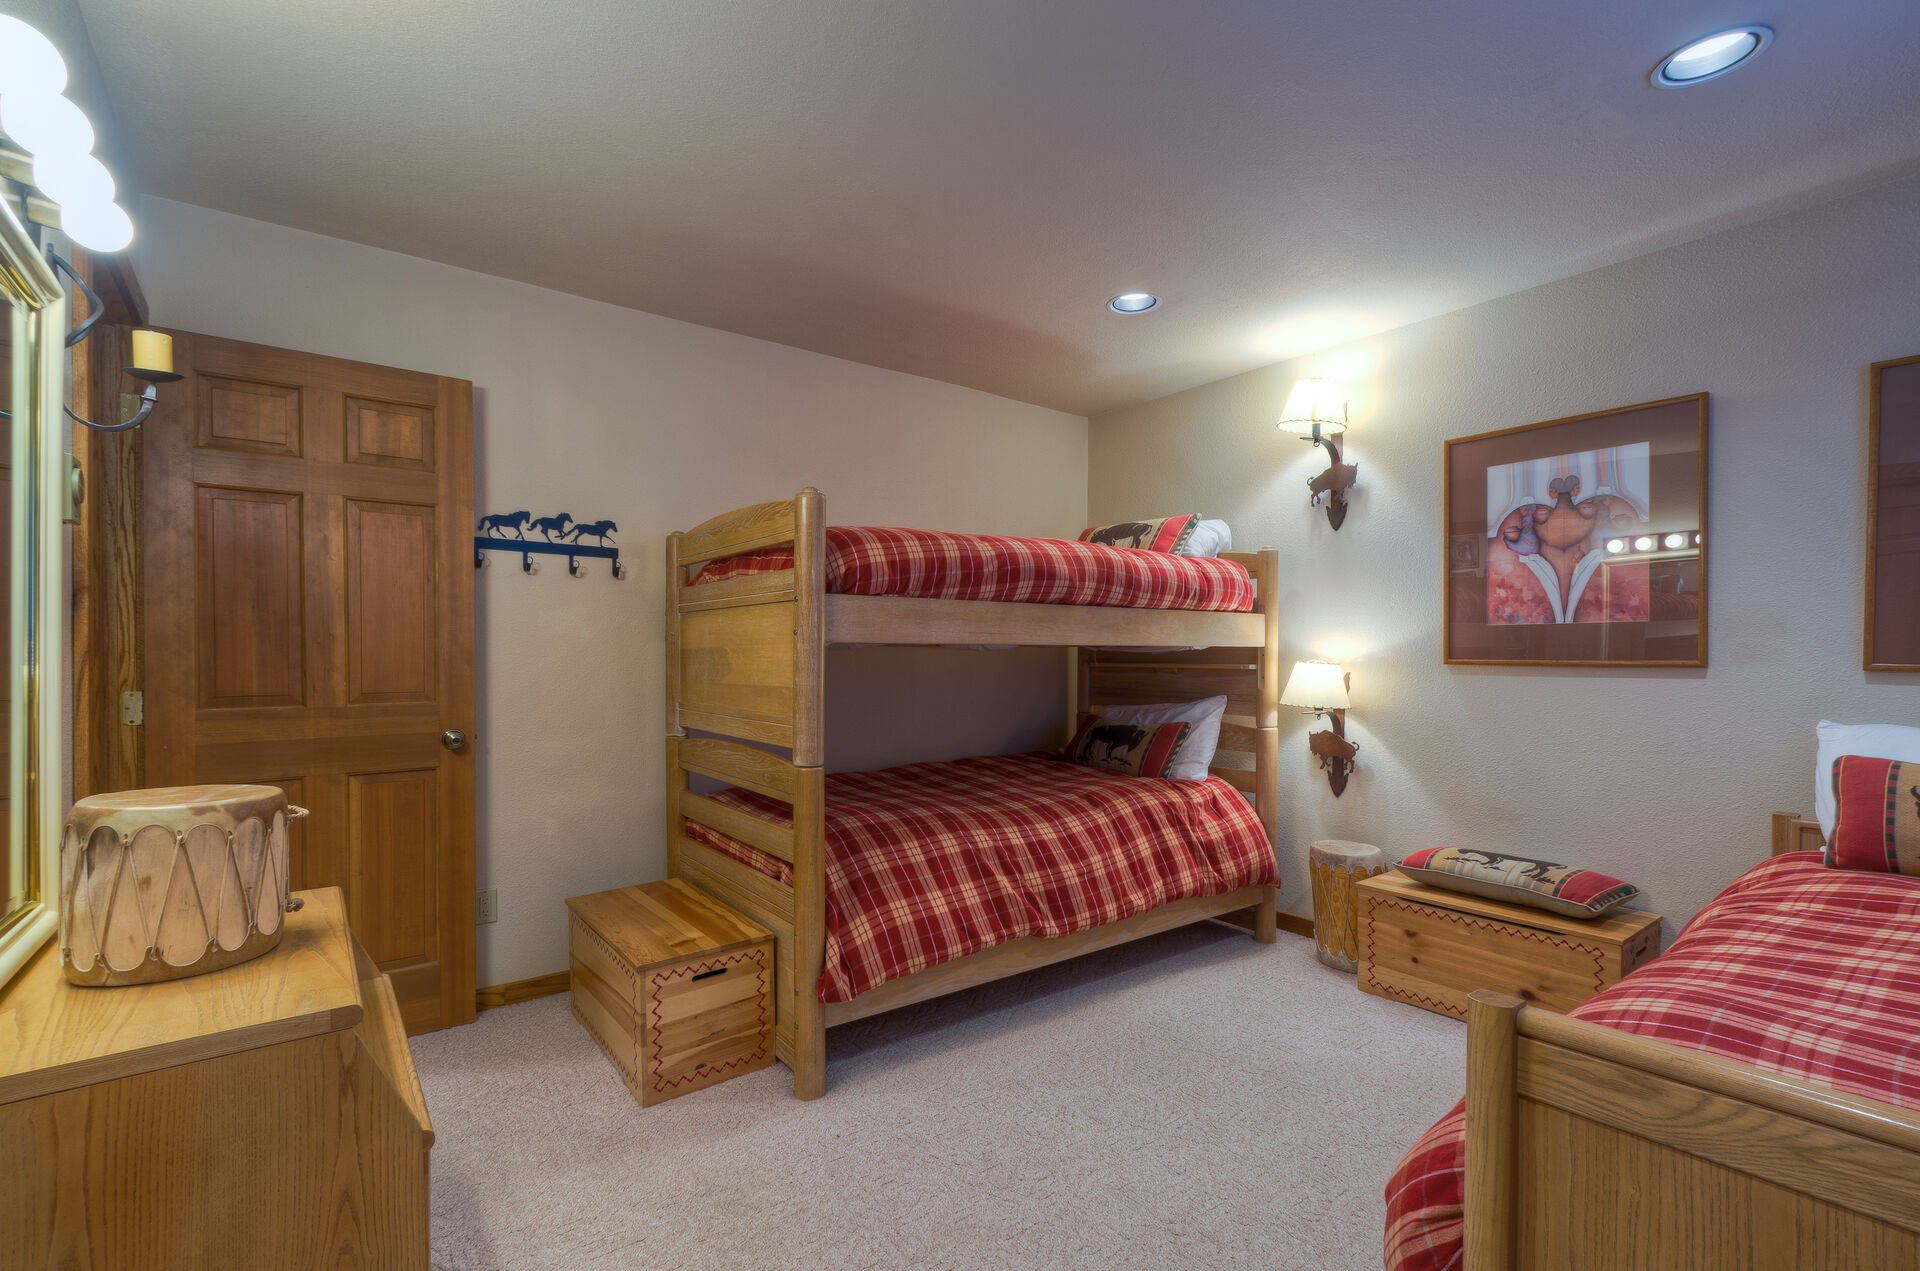 Bunk beds and a single bed